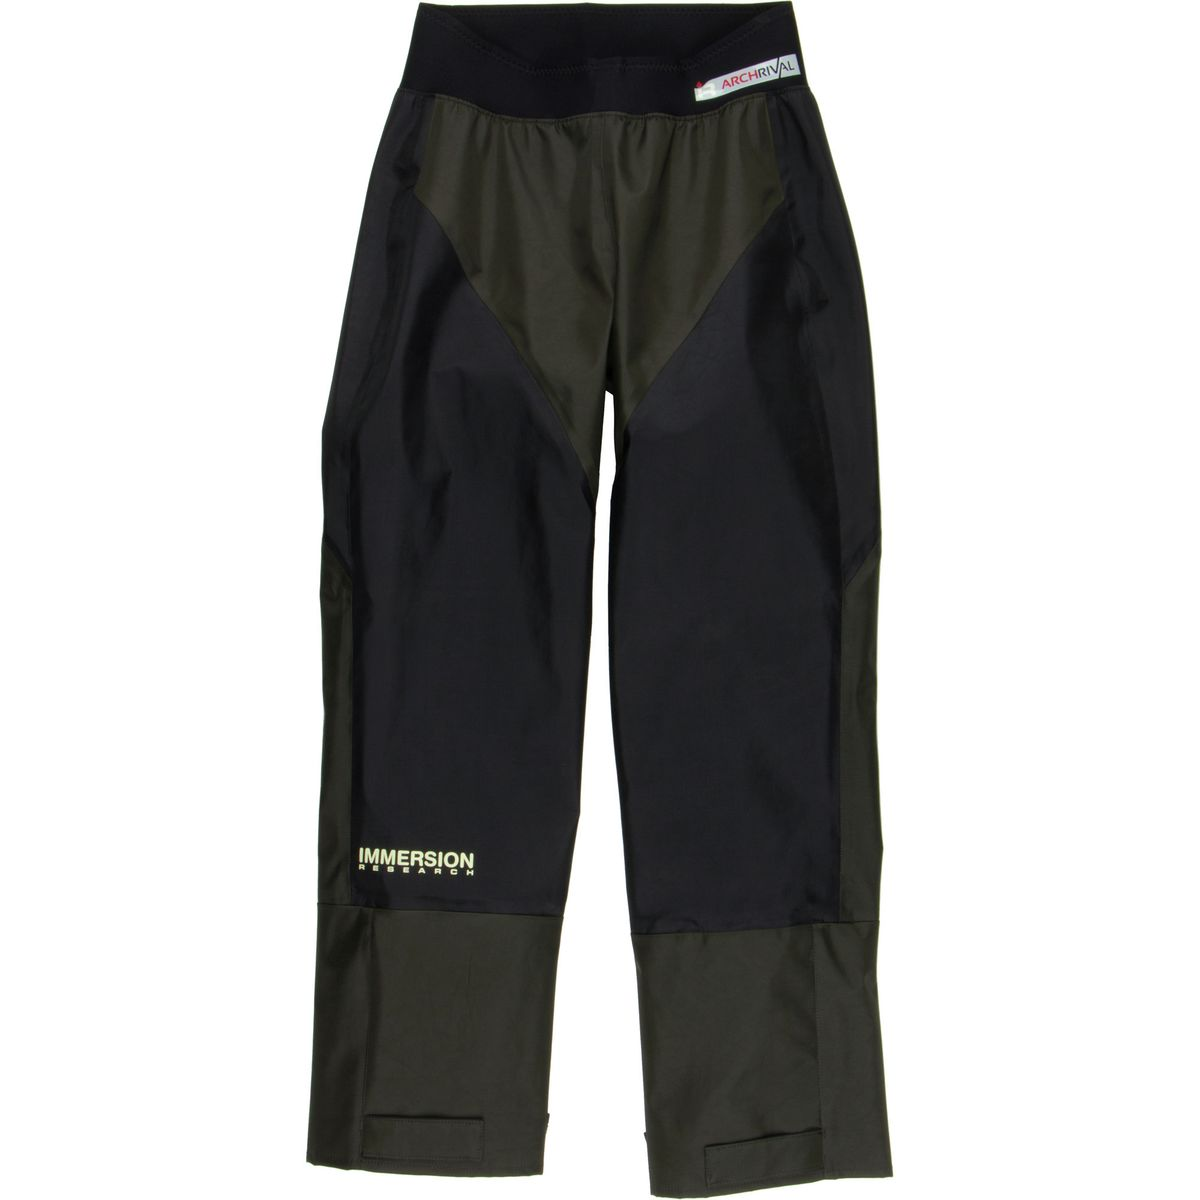 Immersion Research Arch Rival Pants